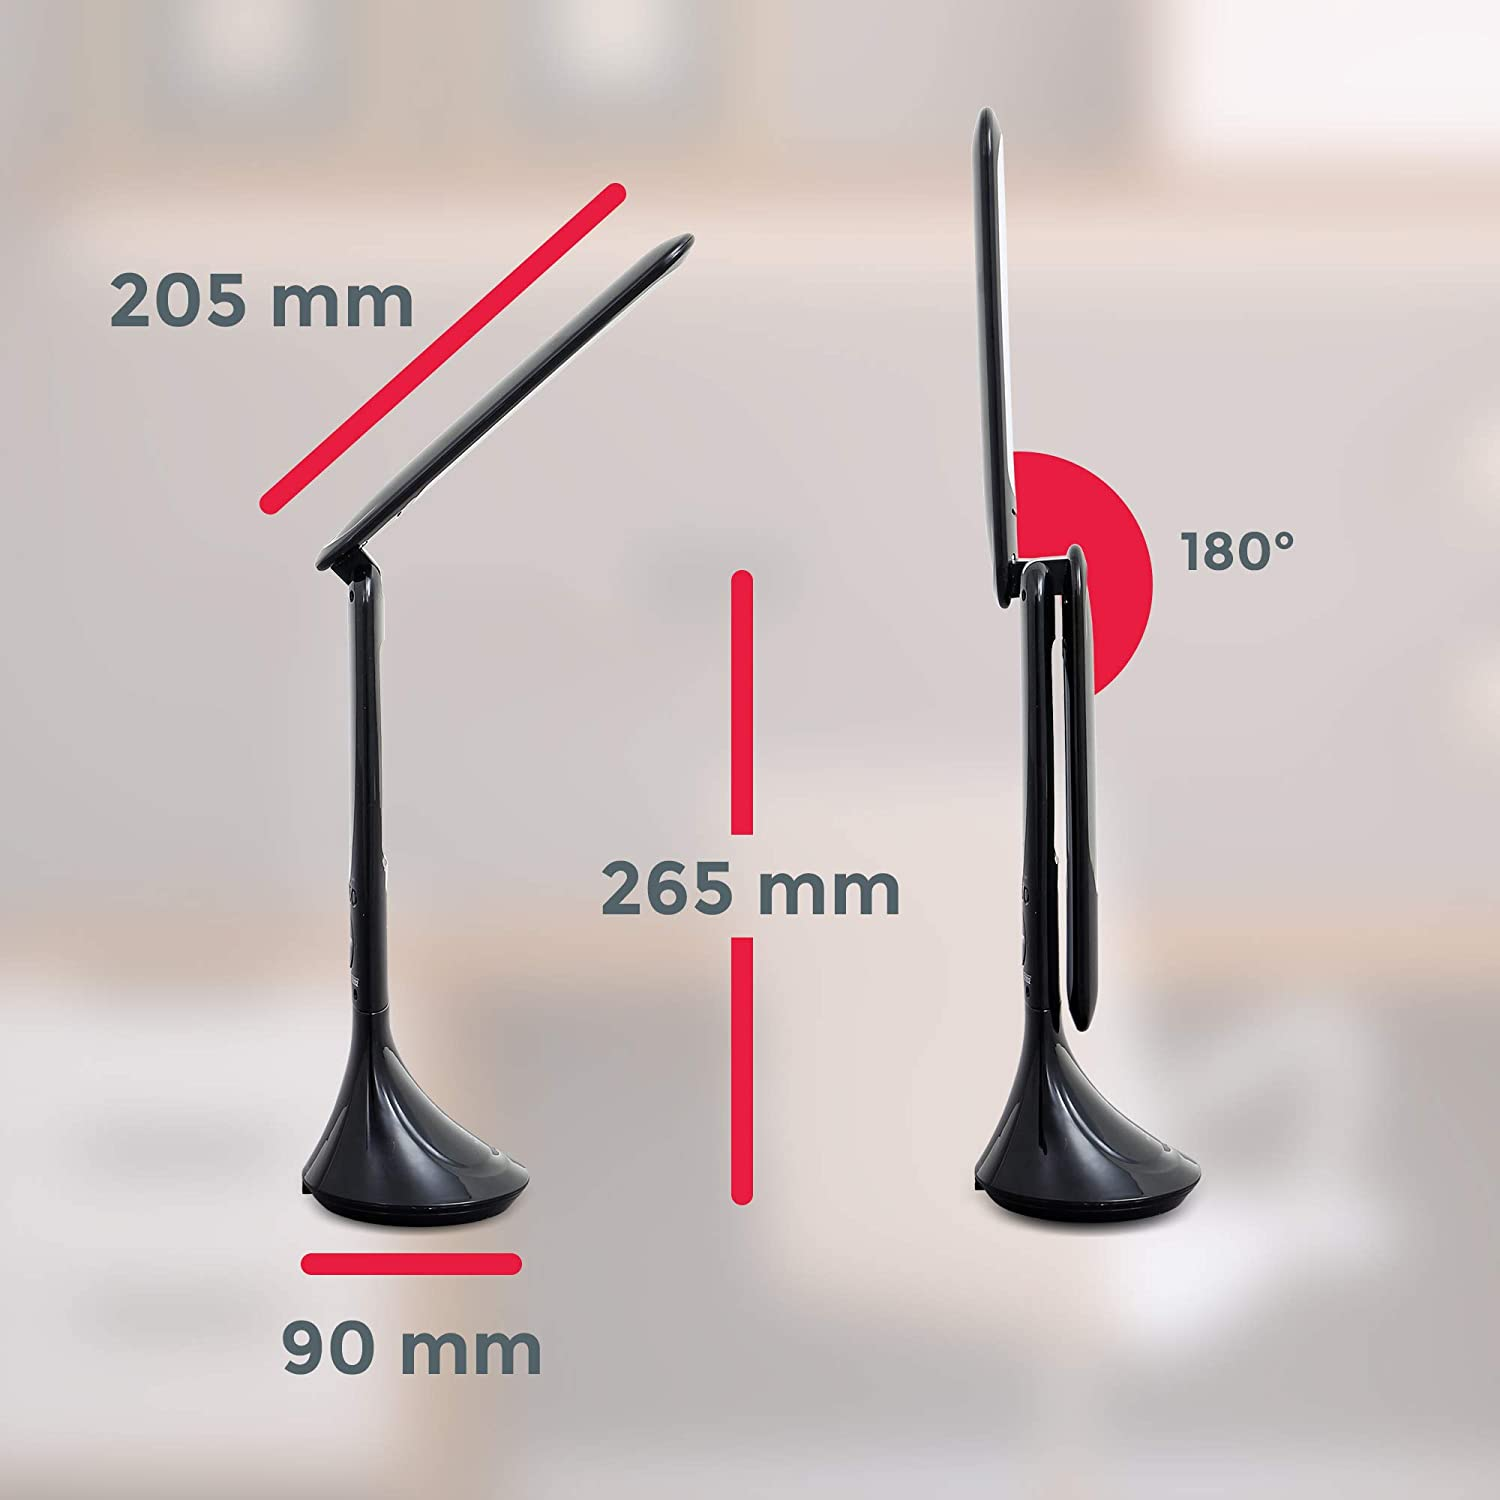 Touch Control Portable Reading lamp for Office Bedside Light Study Thermometer Neutral White 4000K Adjustable Brightness Alarmclock Bedroom B.K.Licht Rechargeable LED Desk lamp